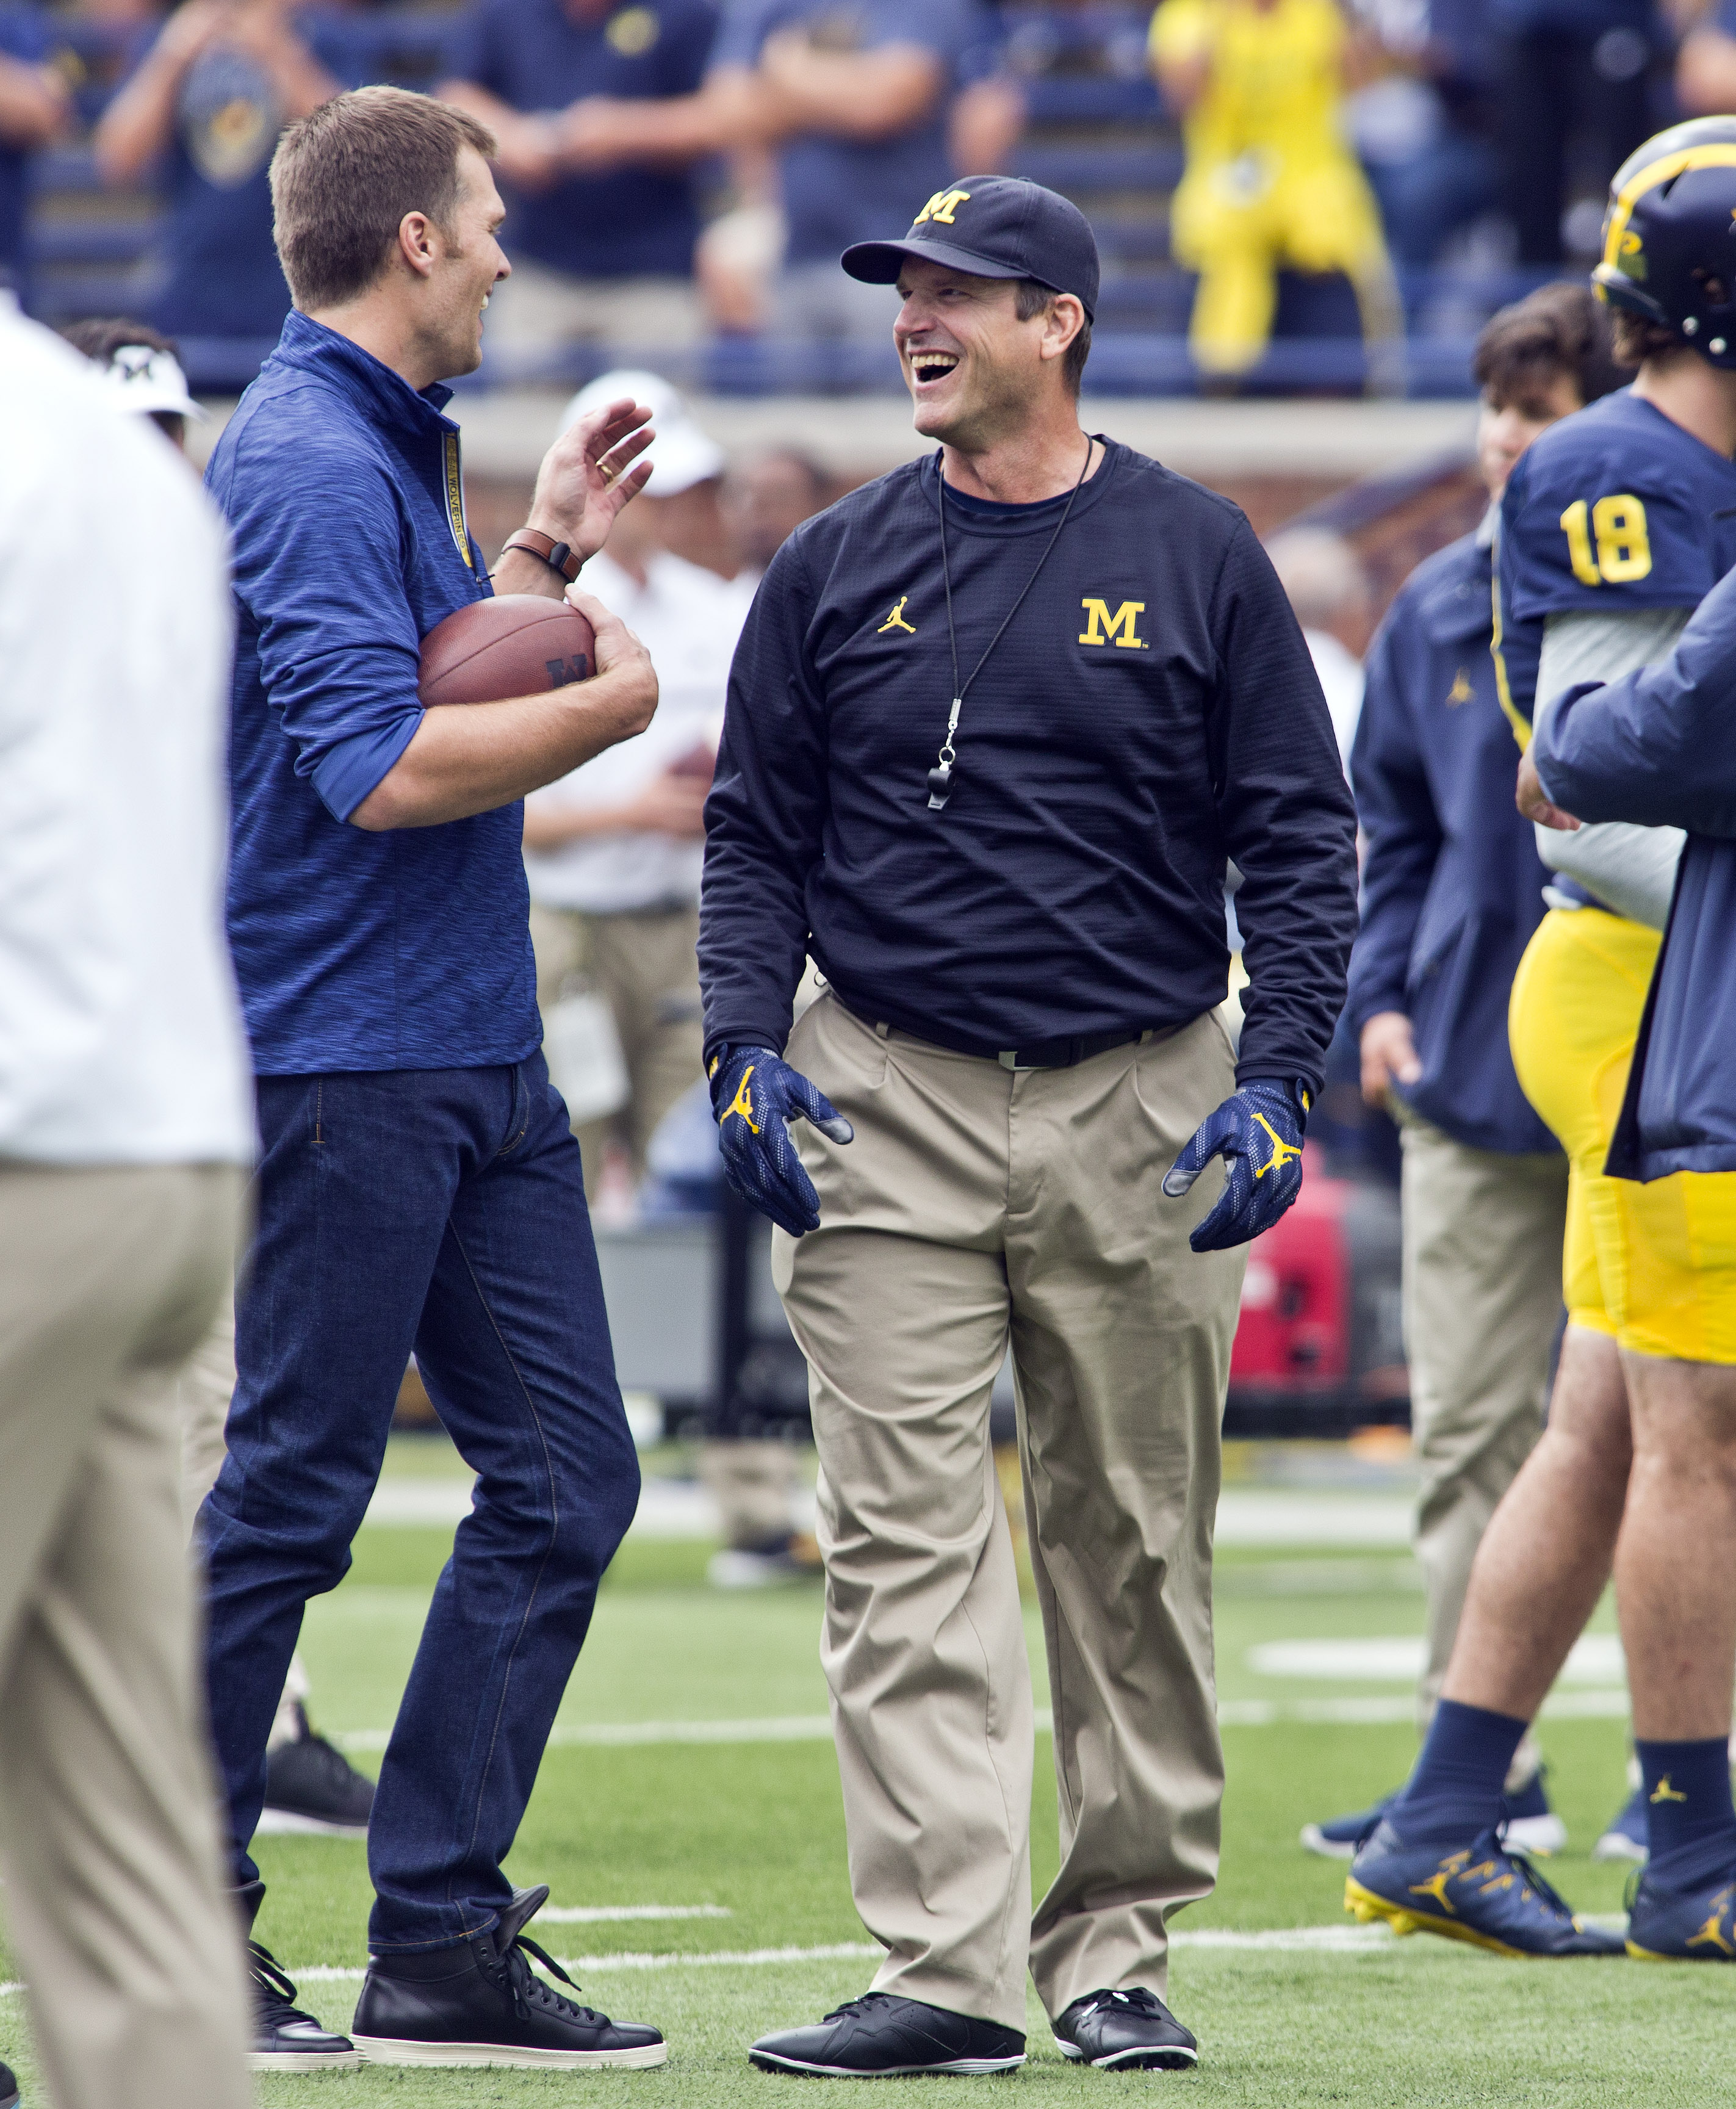 Former Michigan and currently suspended New England Patriots quarterback Tom Brady, left, shares a laugh with Michigan head coach Jim Harbaugh, right,  before an NCAA college football game against Colorado at Michigan Stadium in Ann Arbor, Mich., Saturday